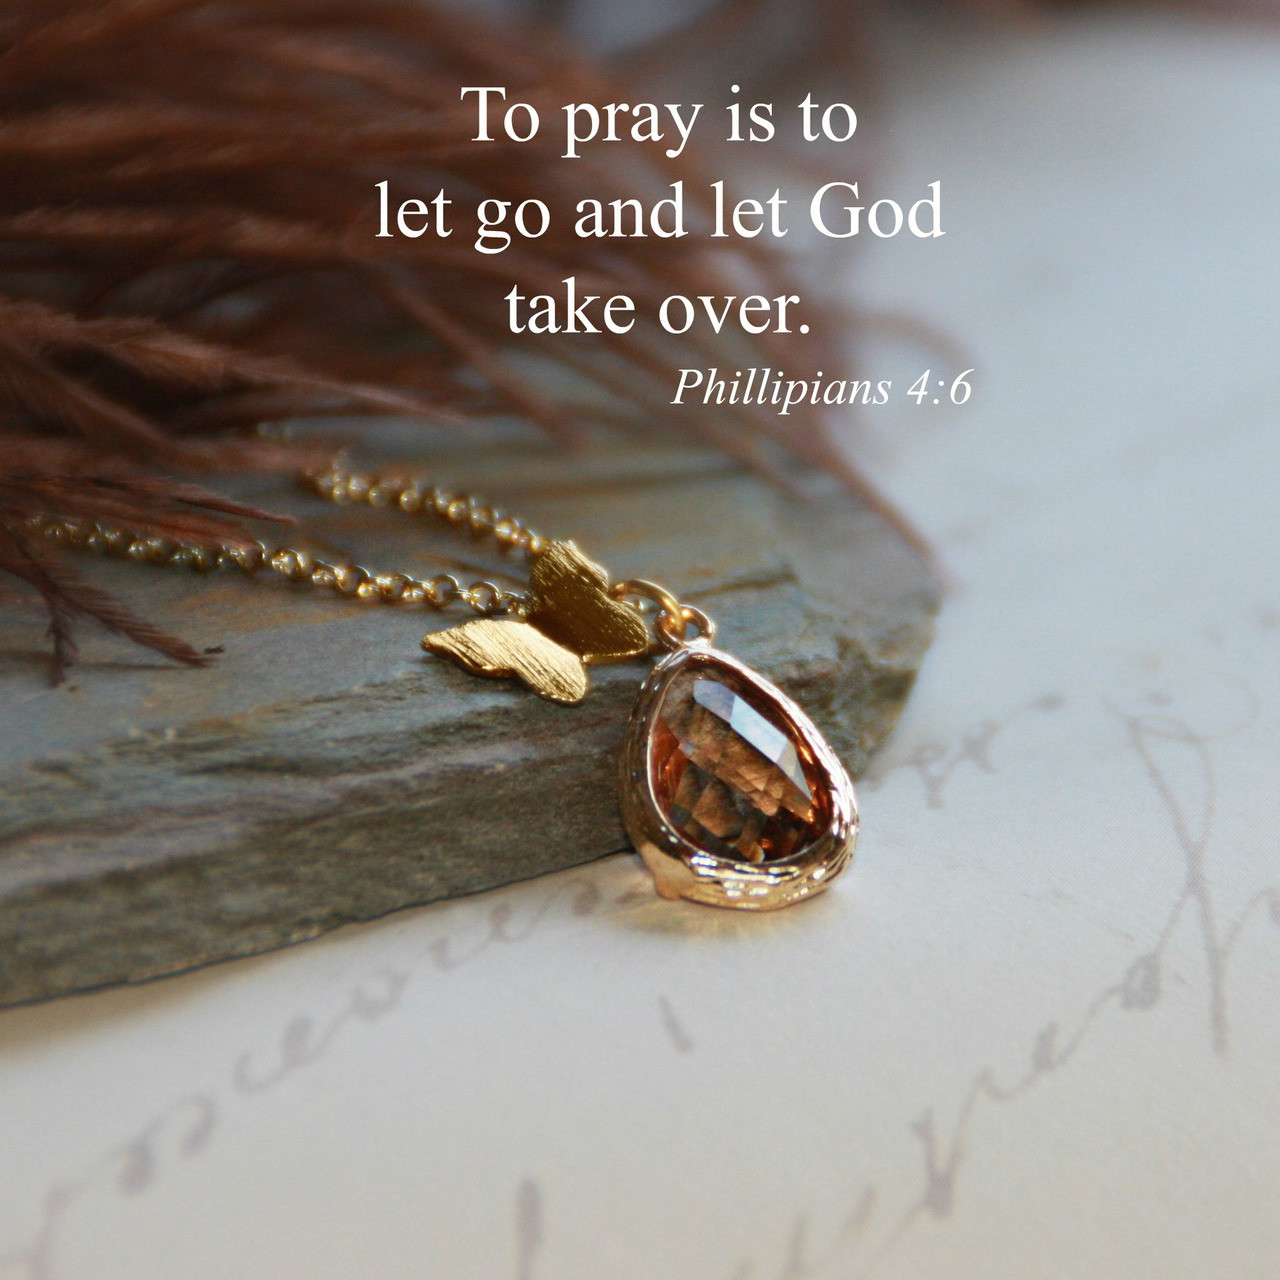 IN-536  Pray and Let God take over Butterfly Necklace in Golden tones